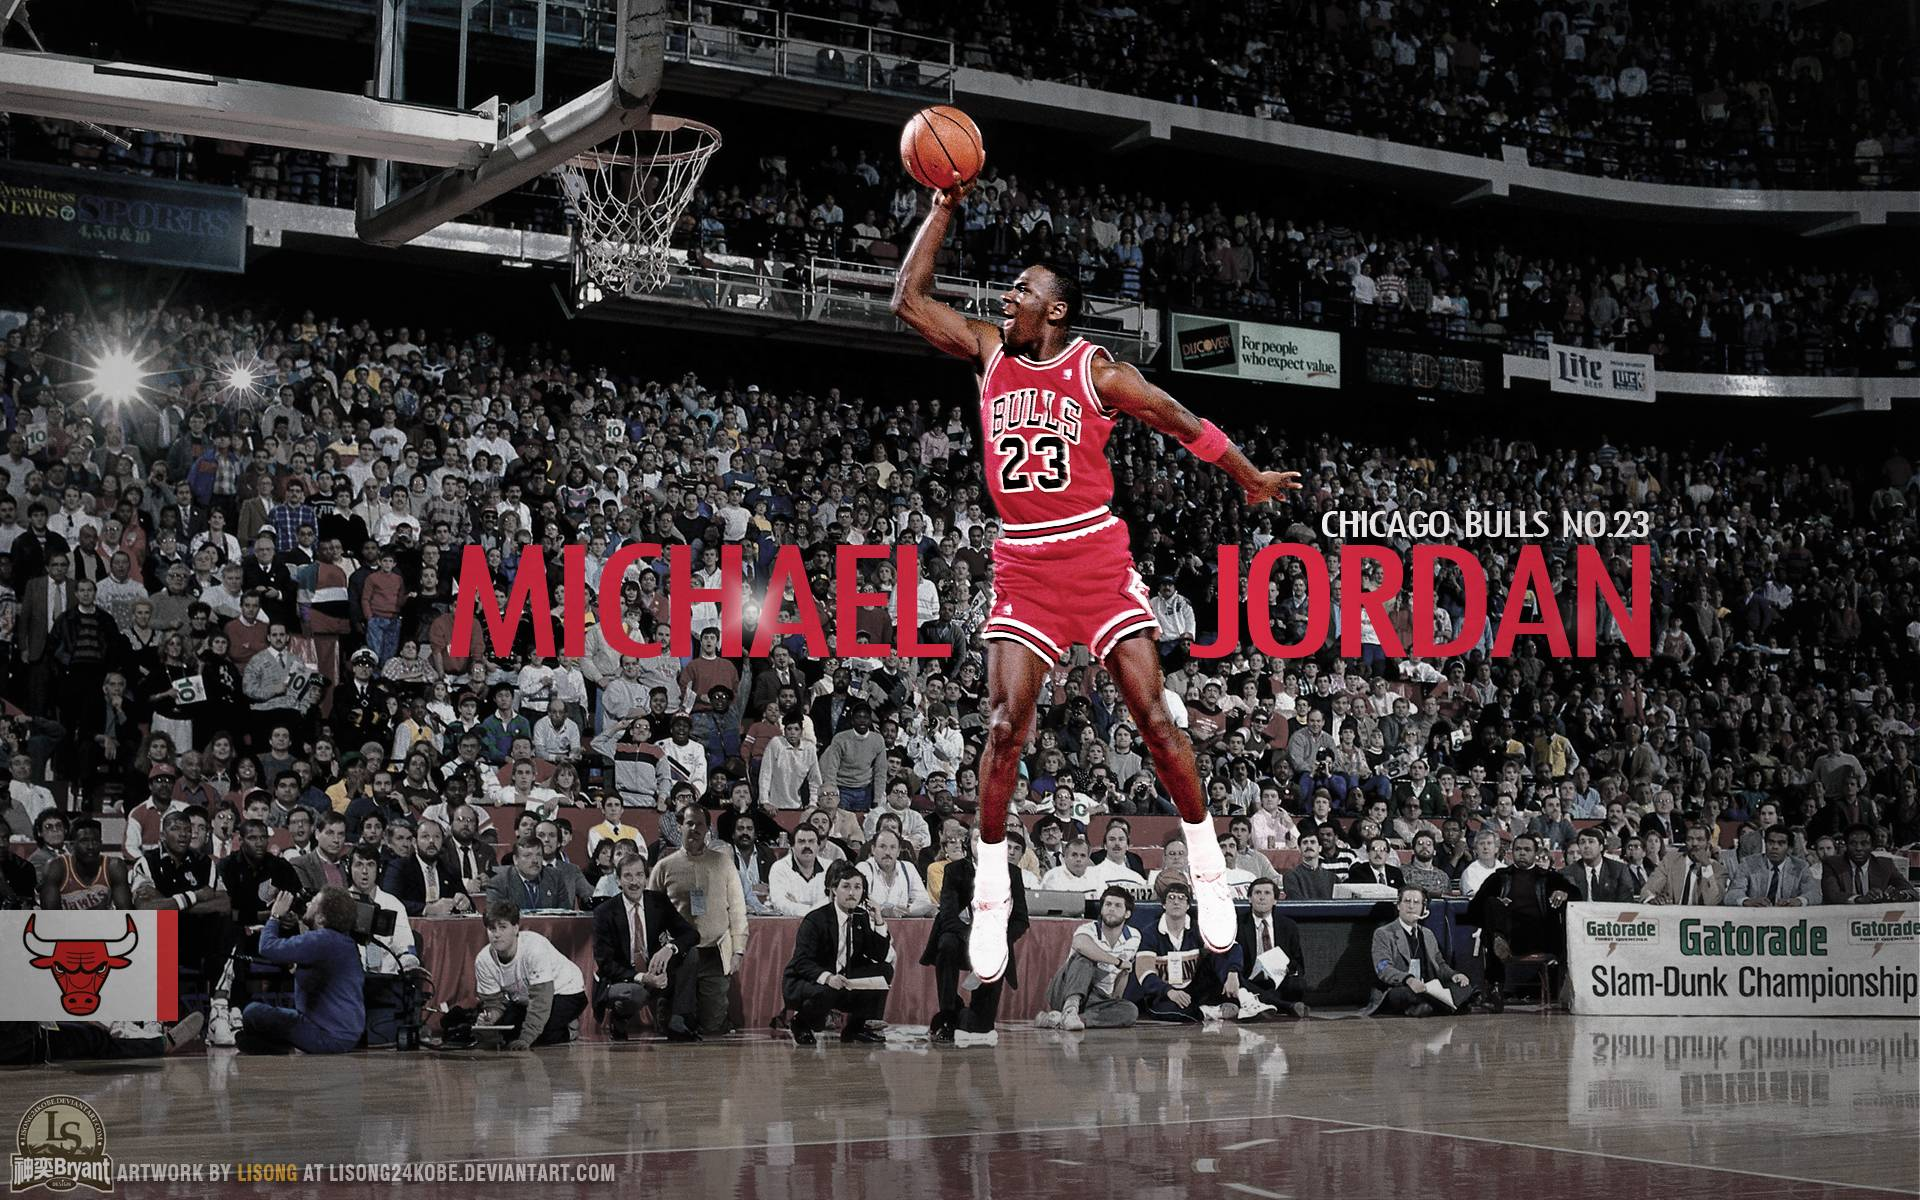 Michael Jordan Wallpapers Hd Hd Cool 7 HD Wallpapers | Hdimges.